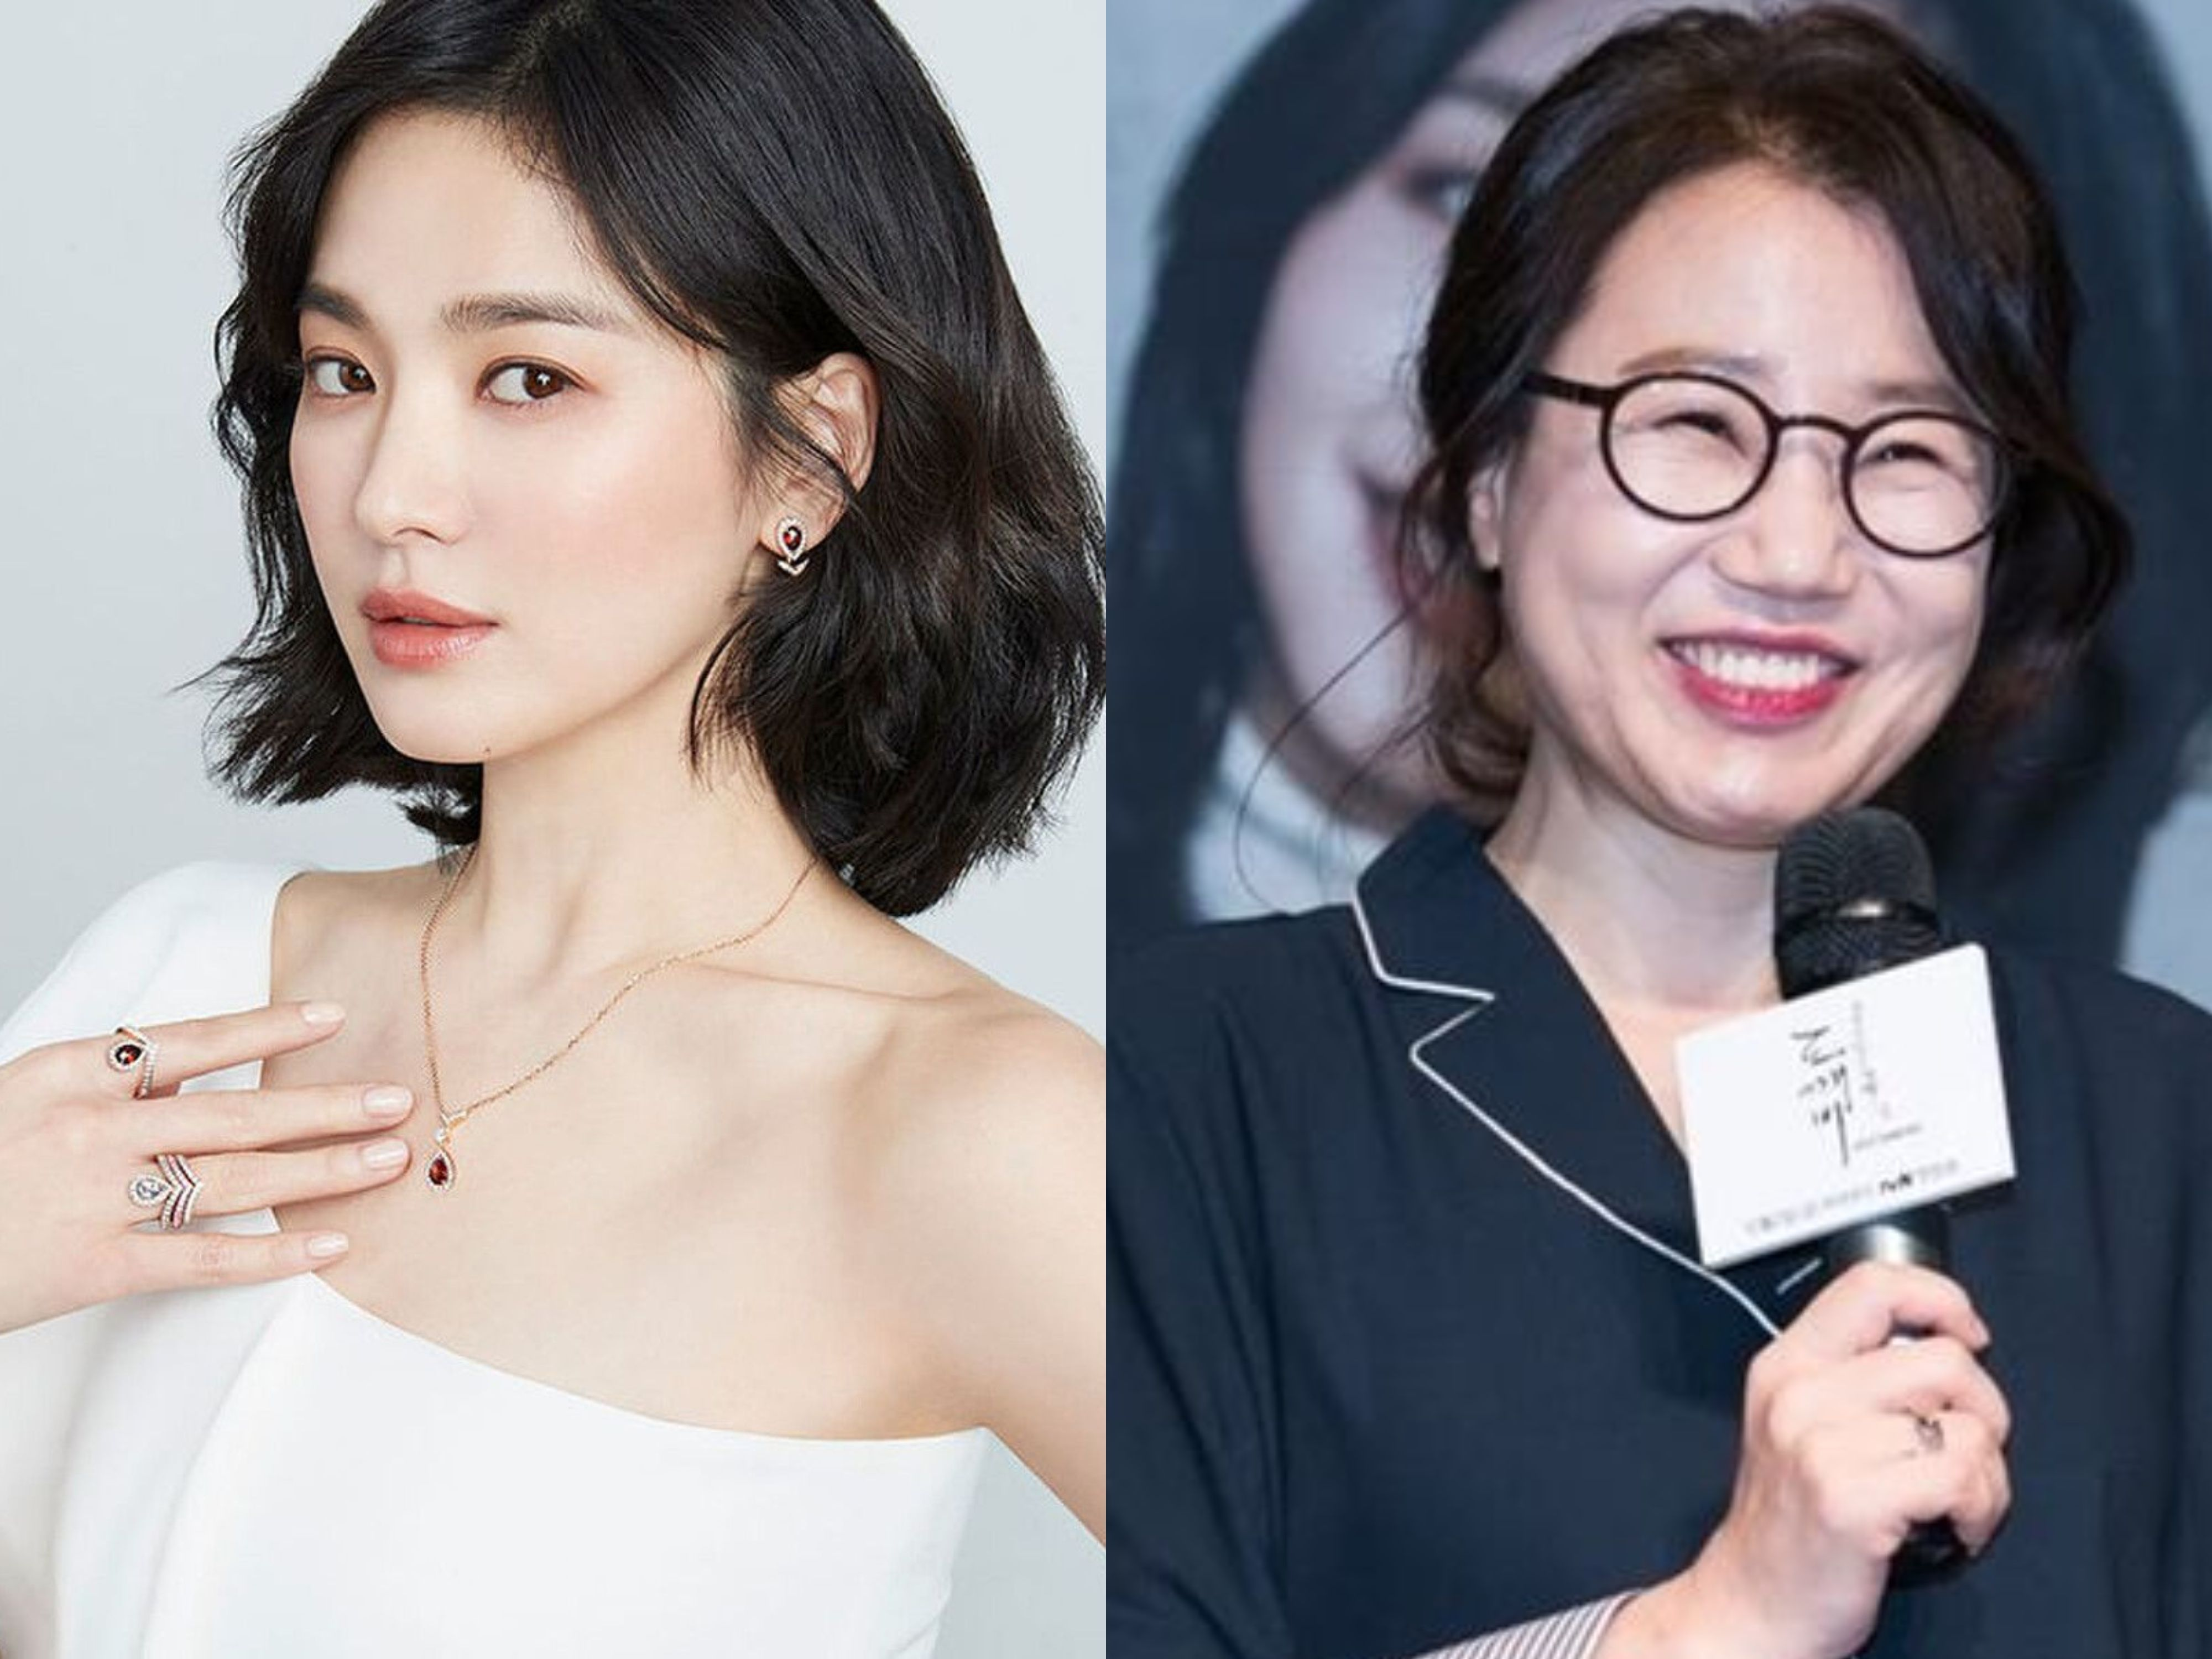 Song Hye Kyo will collaborate with screenwriter Kim Eun Sook of